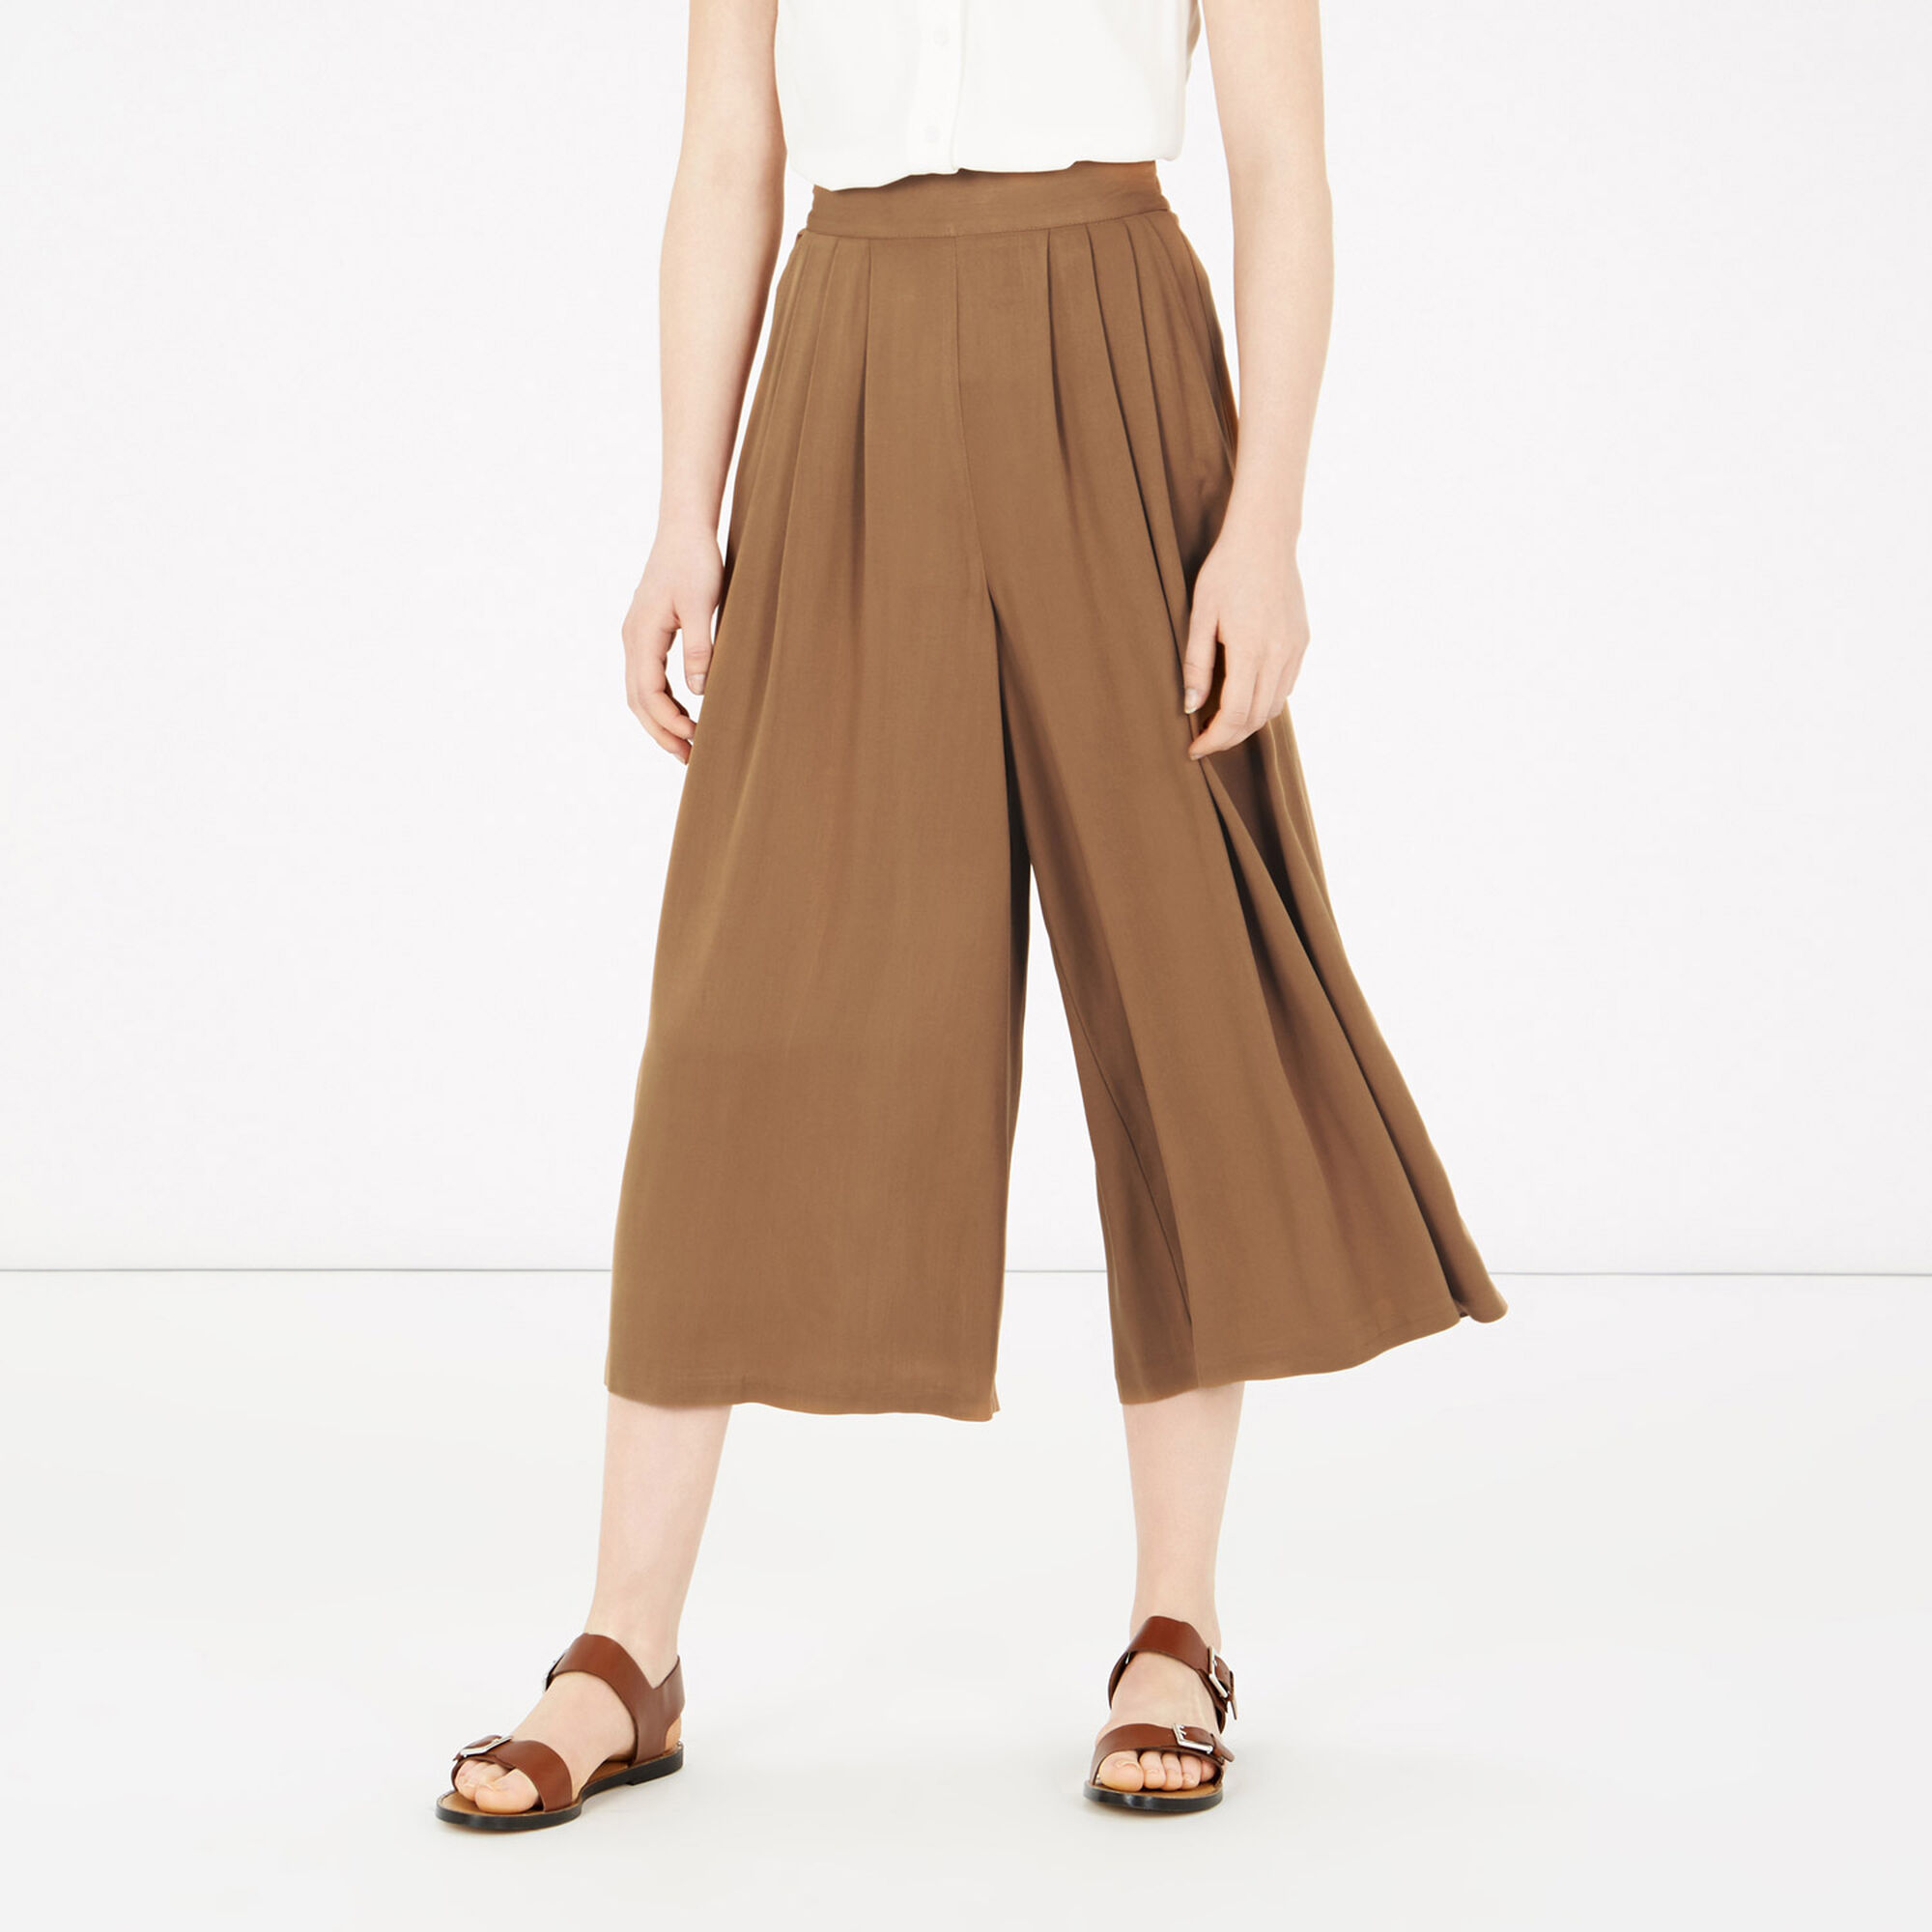 Discover our range of culottes at ASOS. Shop the variety of styles and colours, from denim to cropped and long culottes, to floral and striped prints.